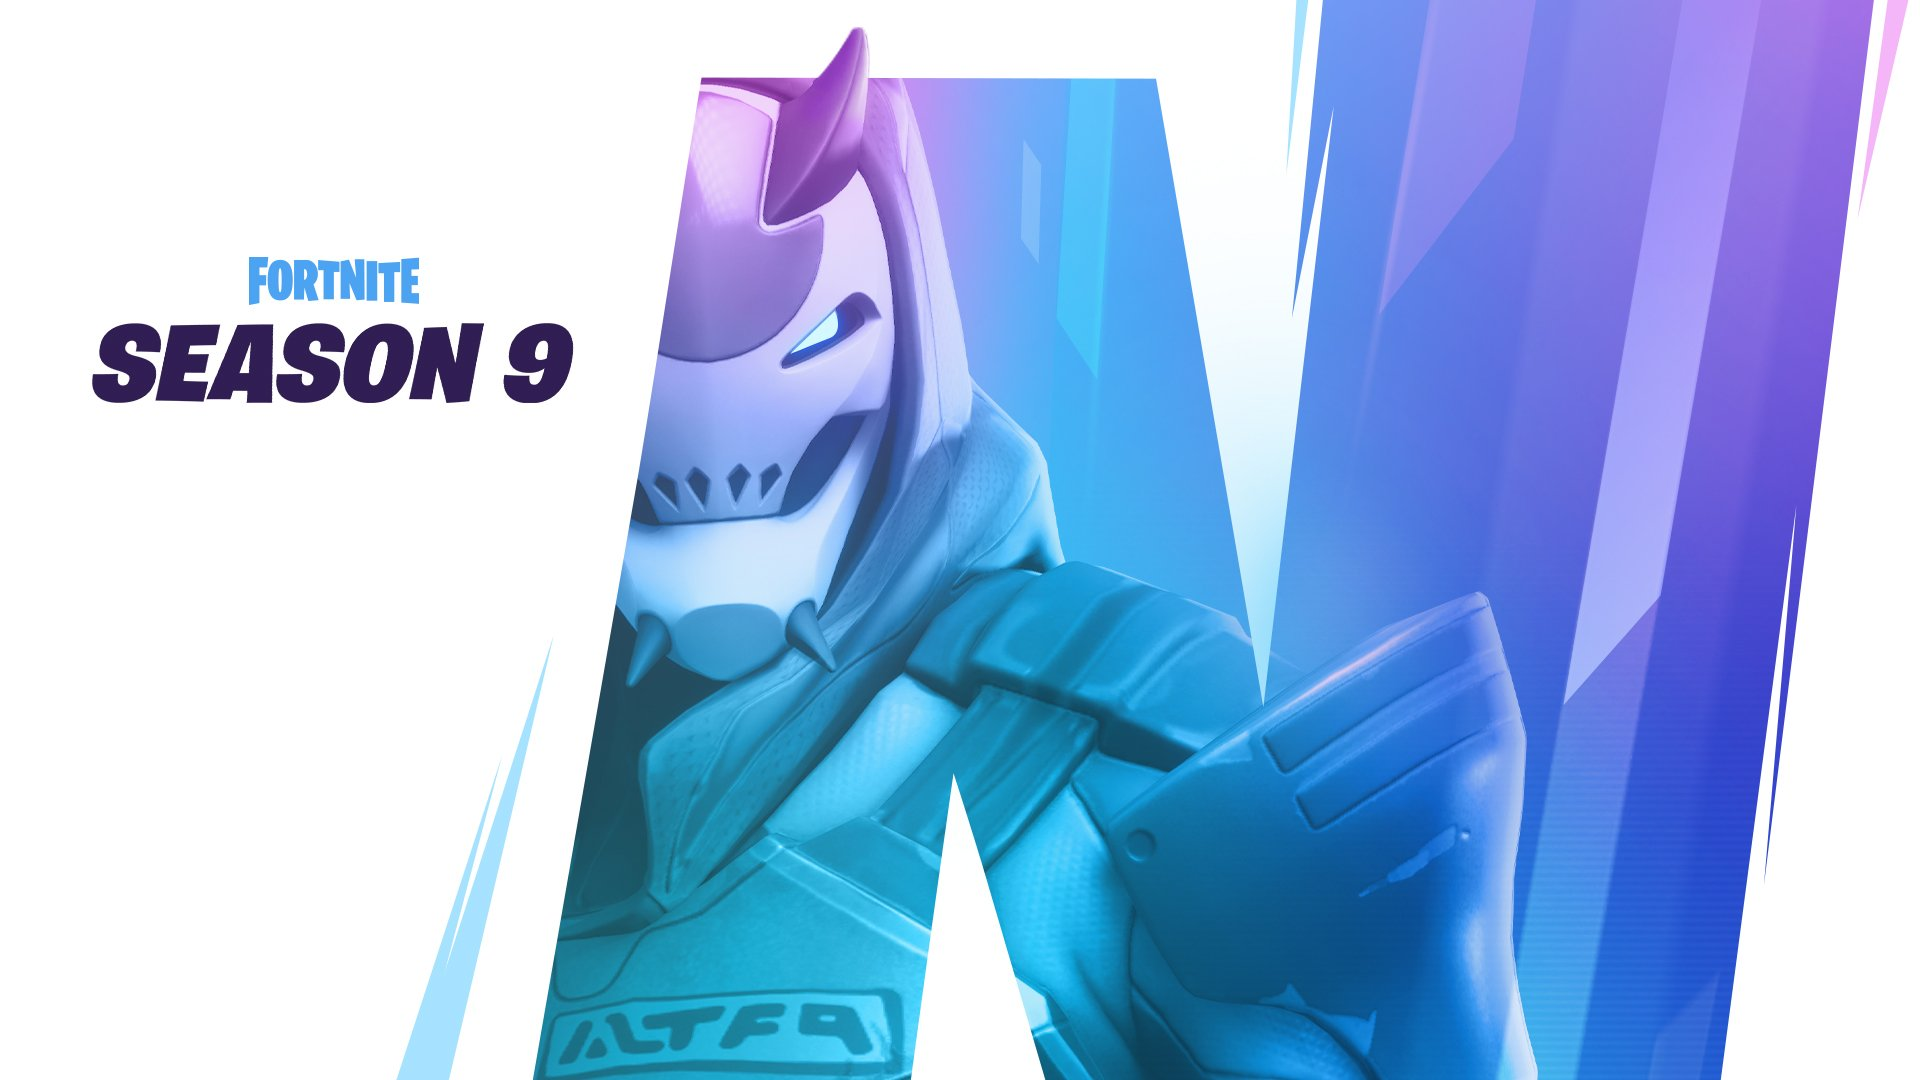 Fortnite season 9 Battle Pass adds Fortbyte collectibles